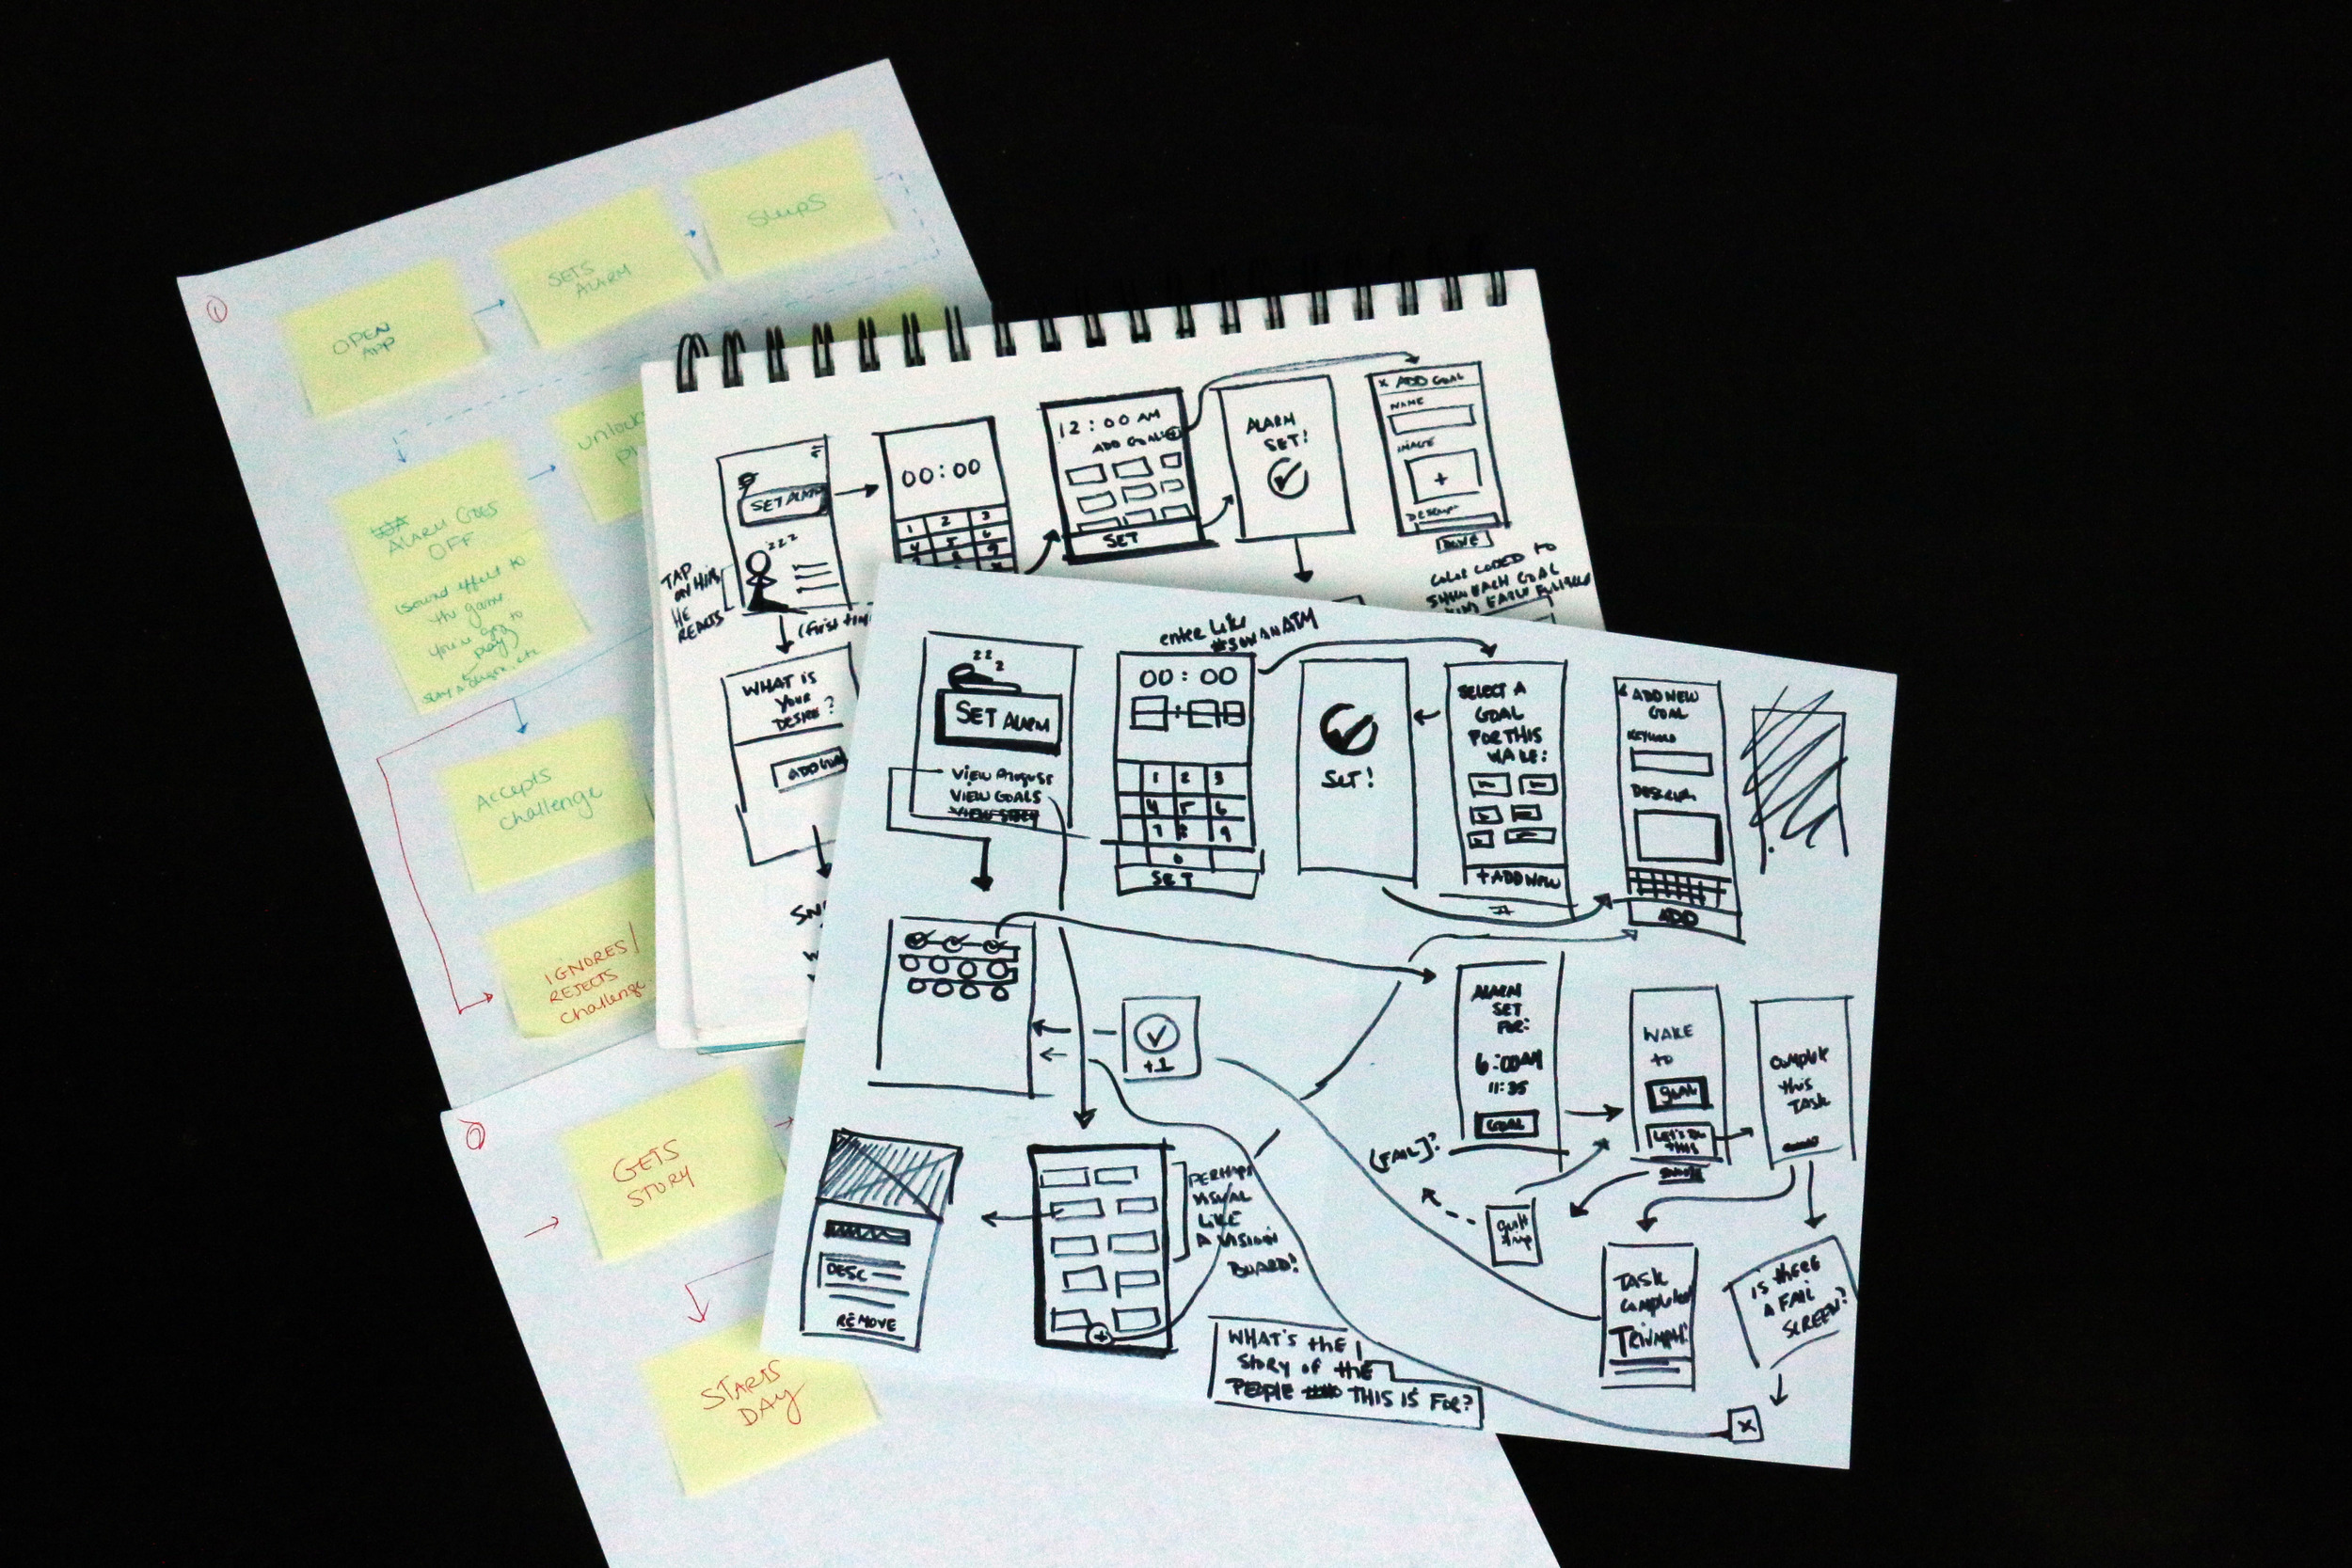 Once settled on the concept, I sketched out a user's flow of actions within the app. My first sketches used verbs only. I integrated visuals into later iterations.